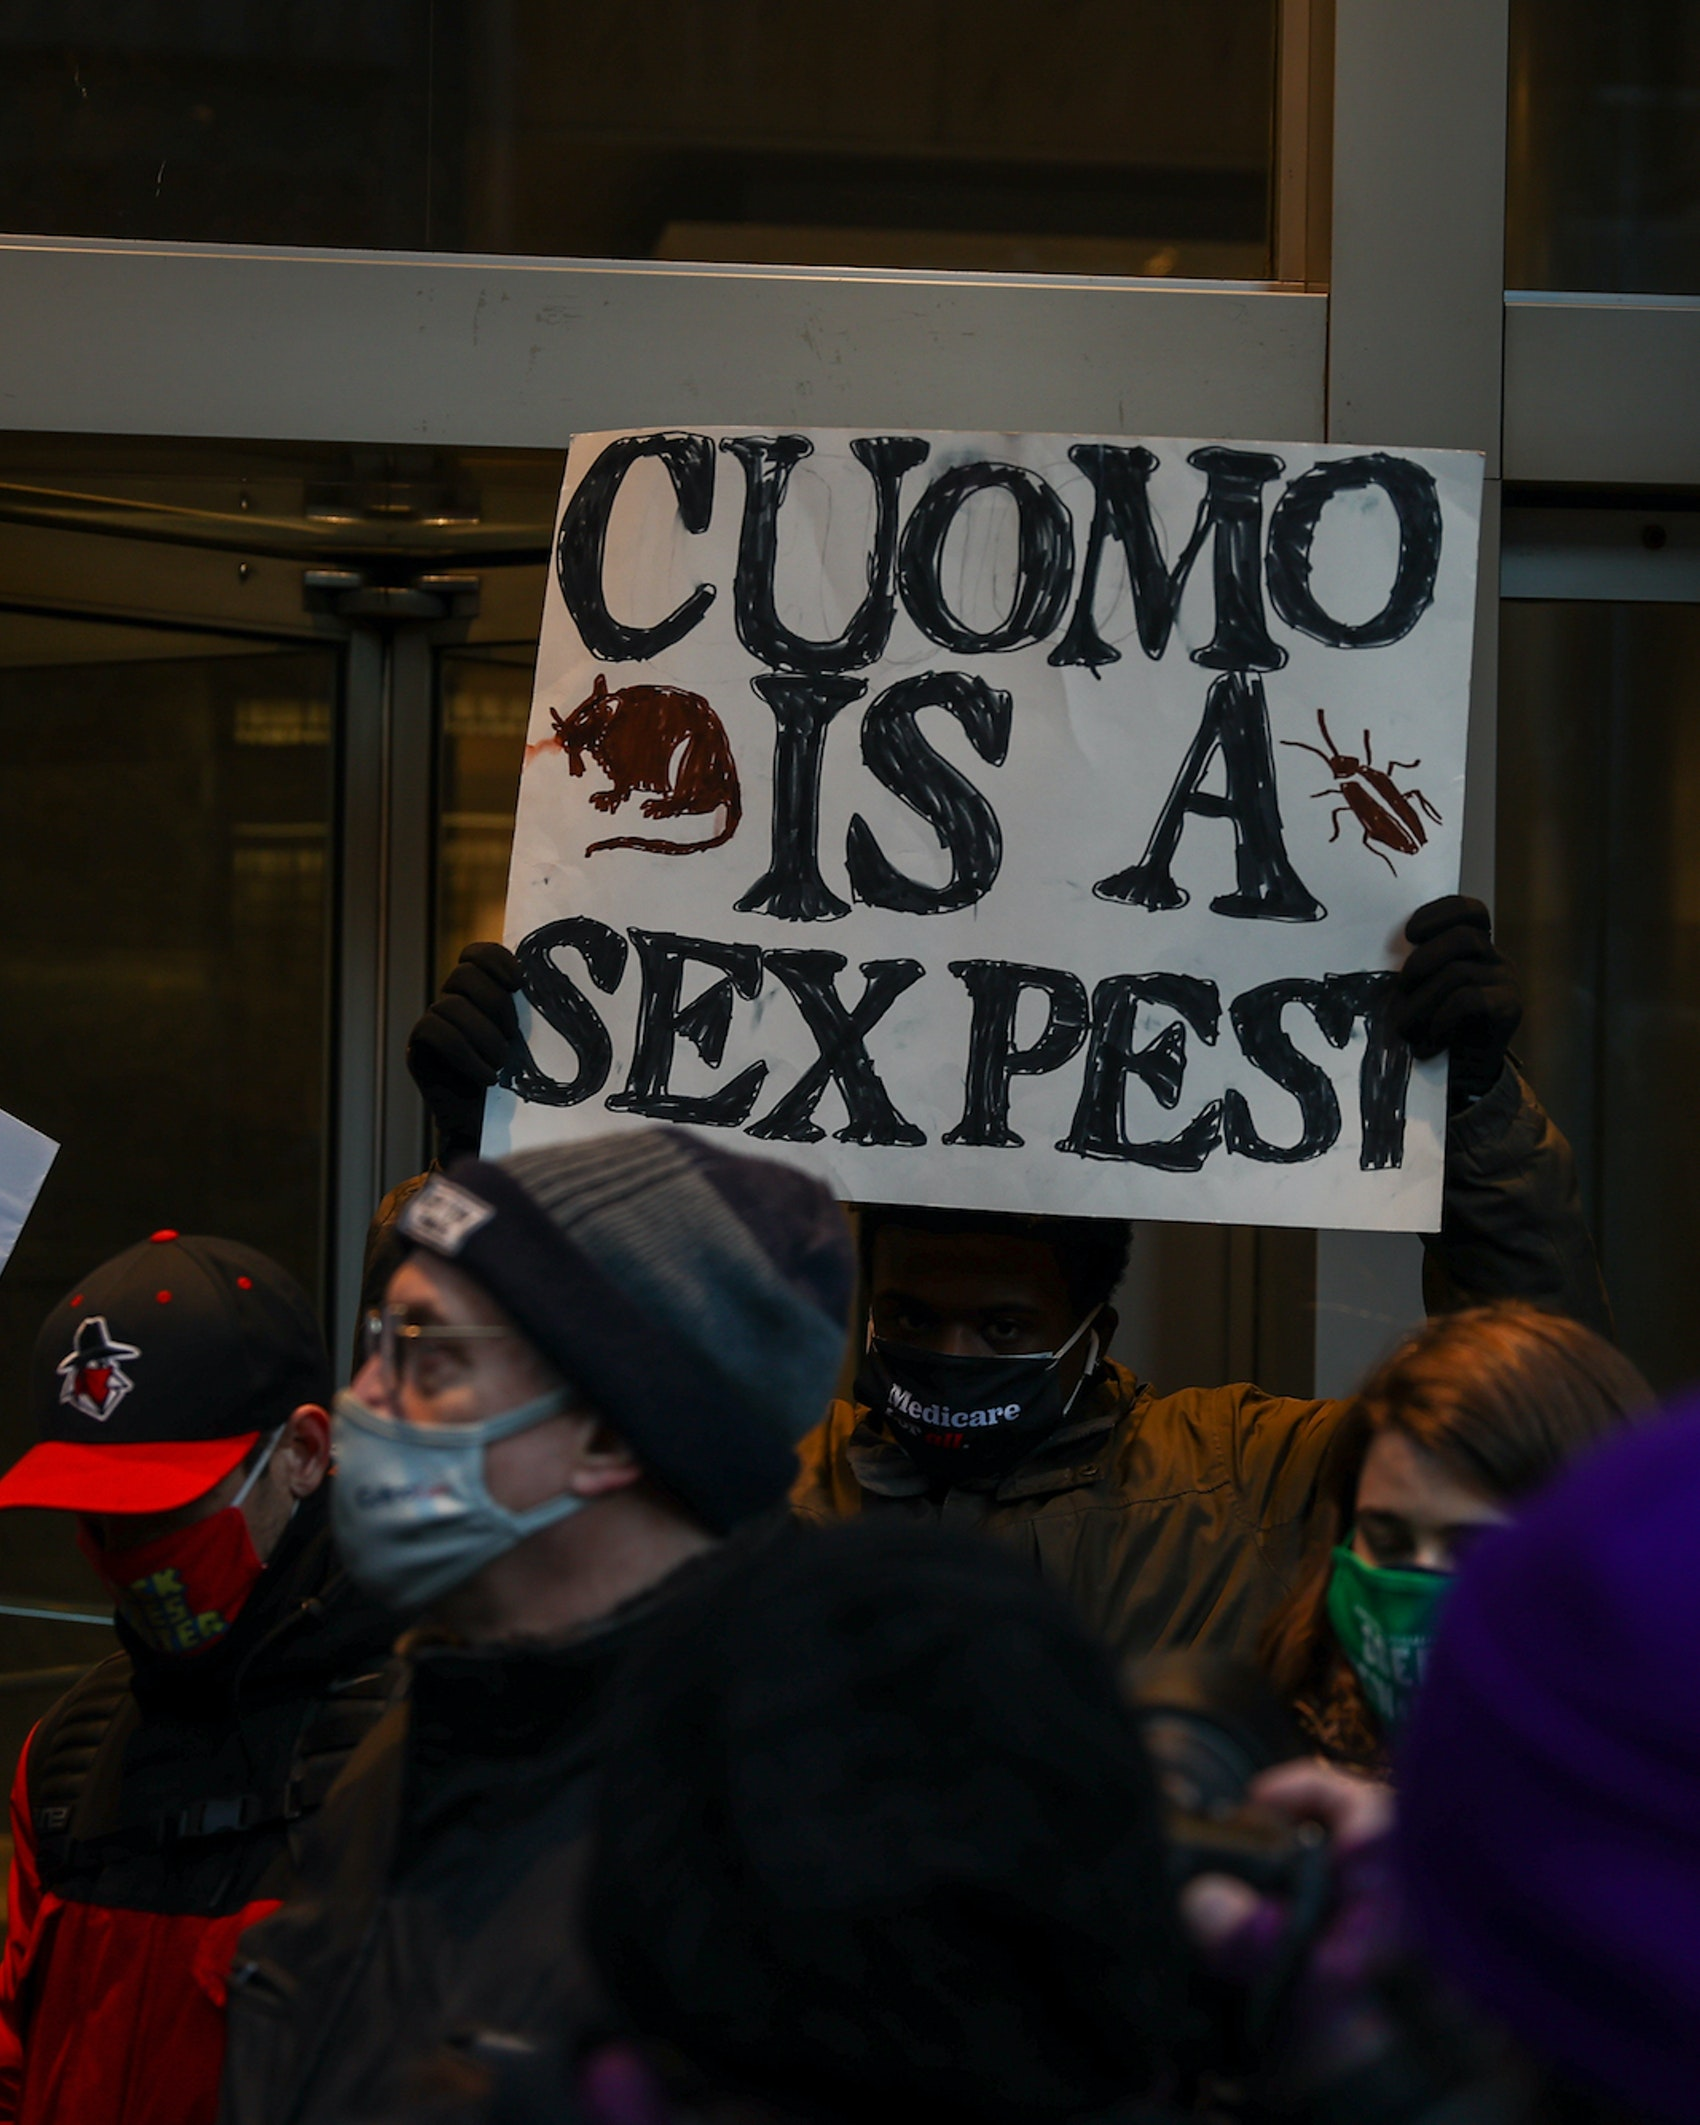 A group of protesters are calling for Governor Andrew Cuomo's resignation following a series of sexual harassment accusations and an attempted cover up of nursing home deaths resulting from pandemic response mismanagement in front of his NYC office in Manhattan of New York City, United States on March 02, 2021. . (Photo by Tayfun Coskun/Anadolu Agency via Getty Images)